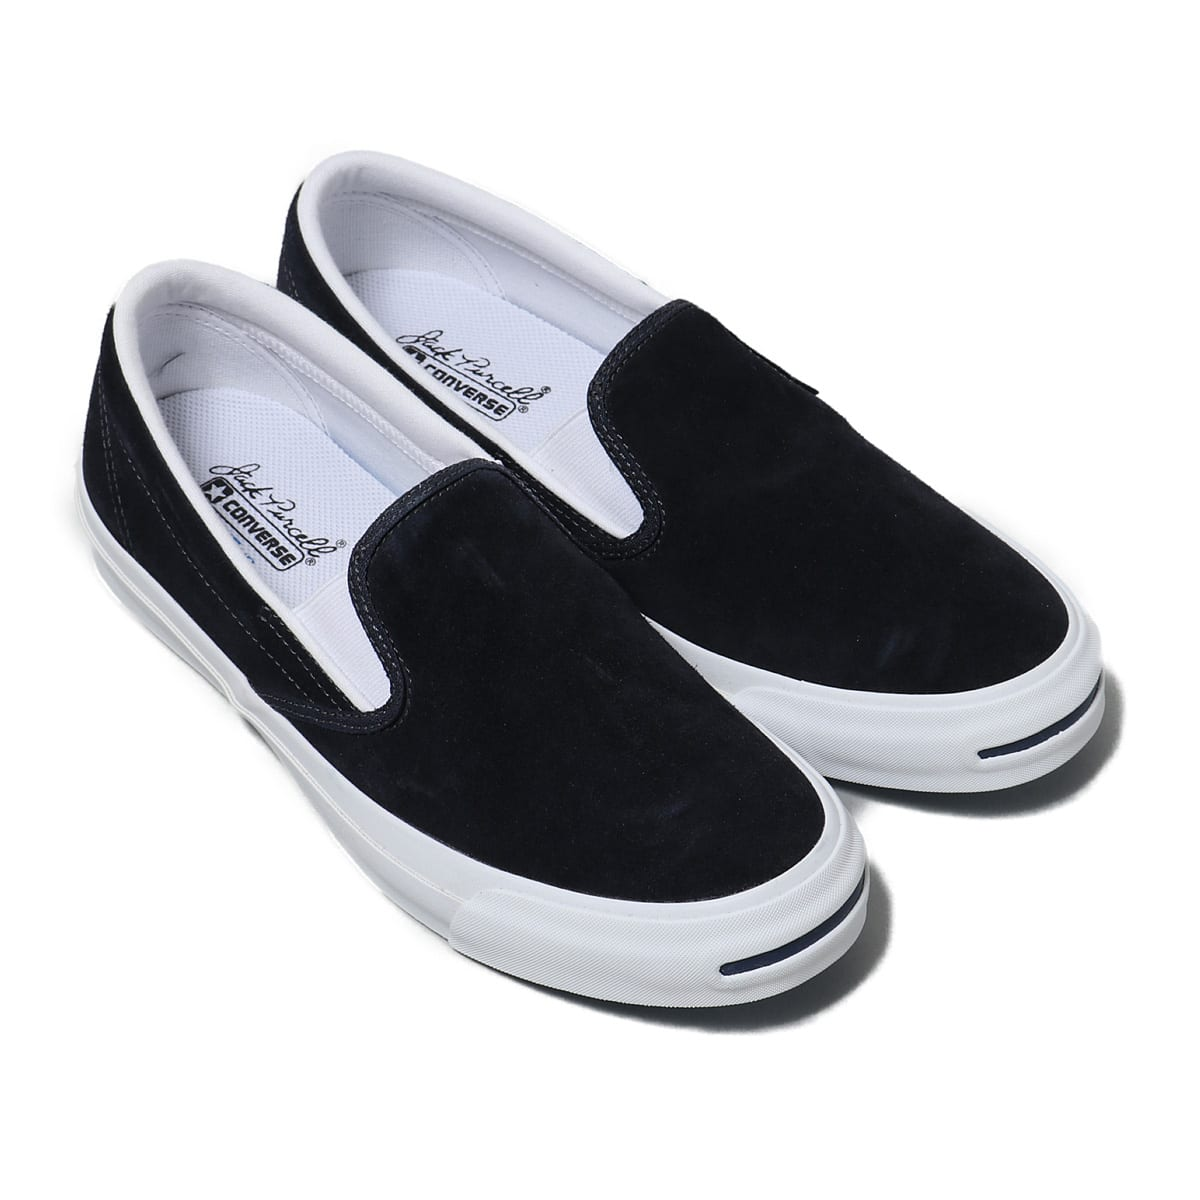 CONVERSE JACK PURCELL SUEDE SLIP-ON RH DARK NAVY 20SS-S_photo_large